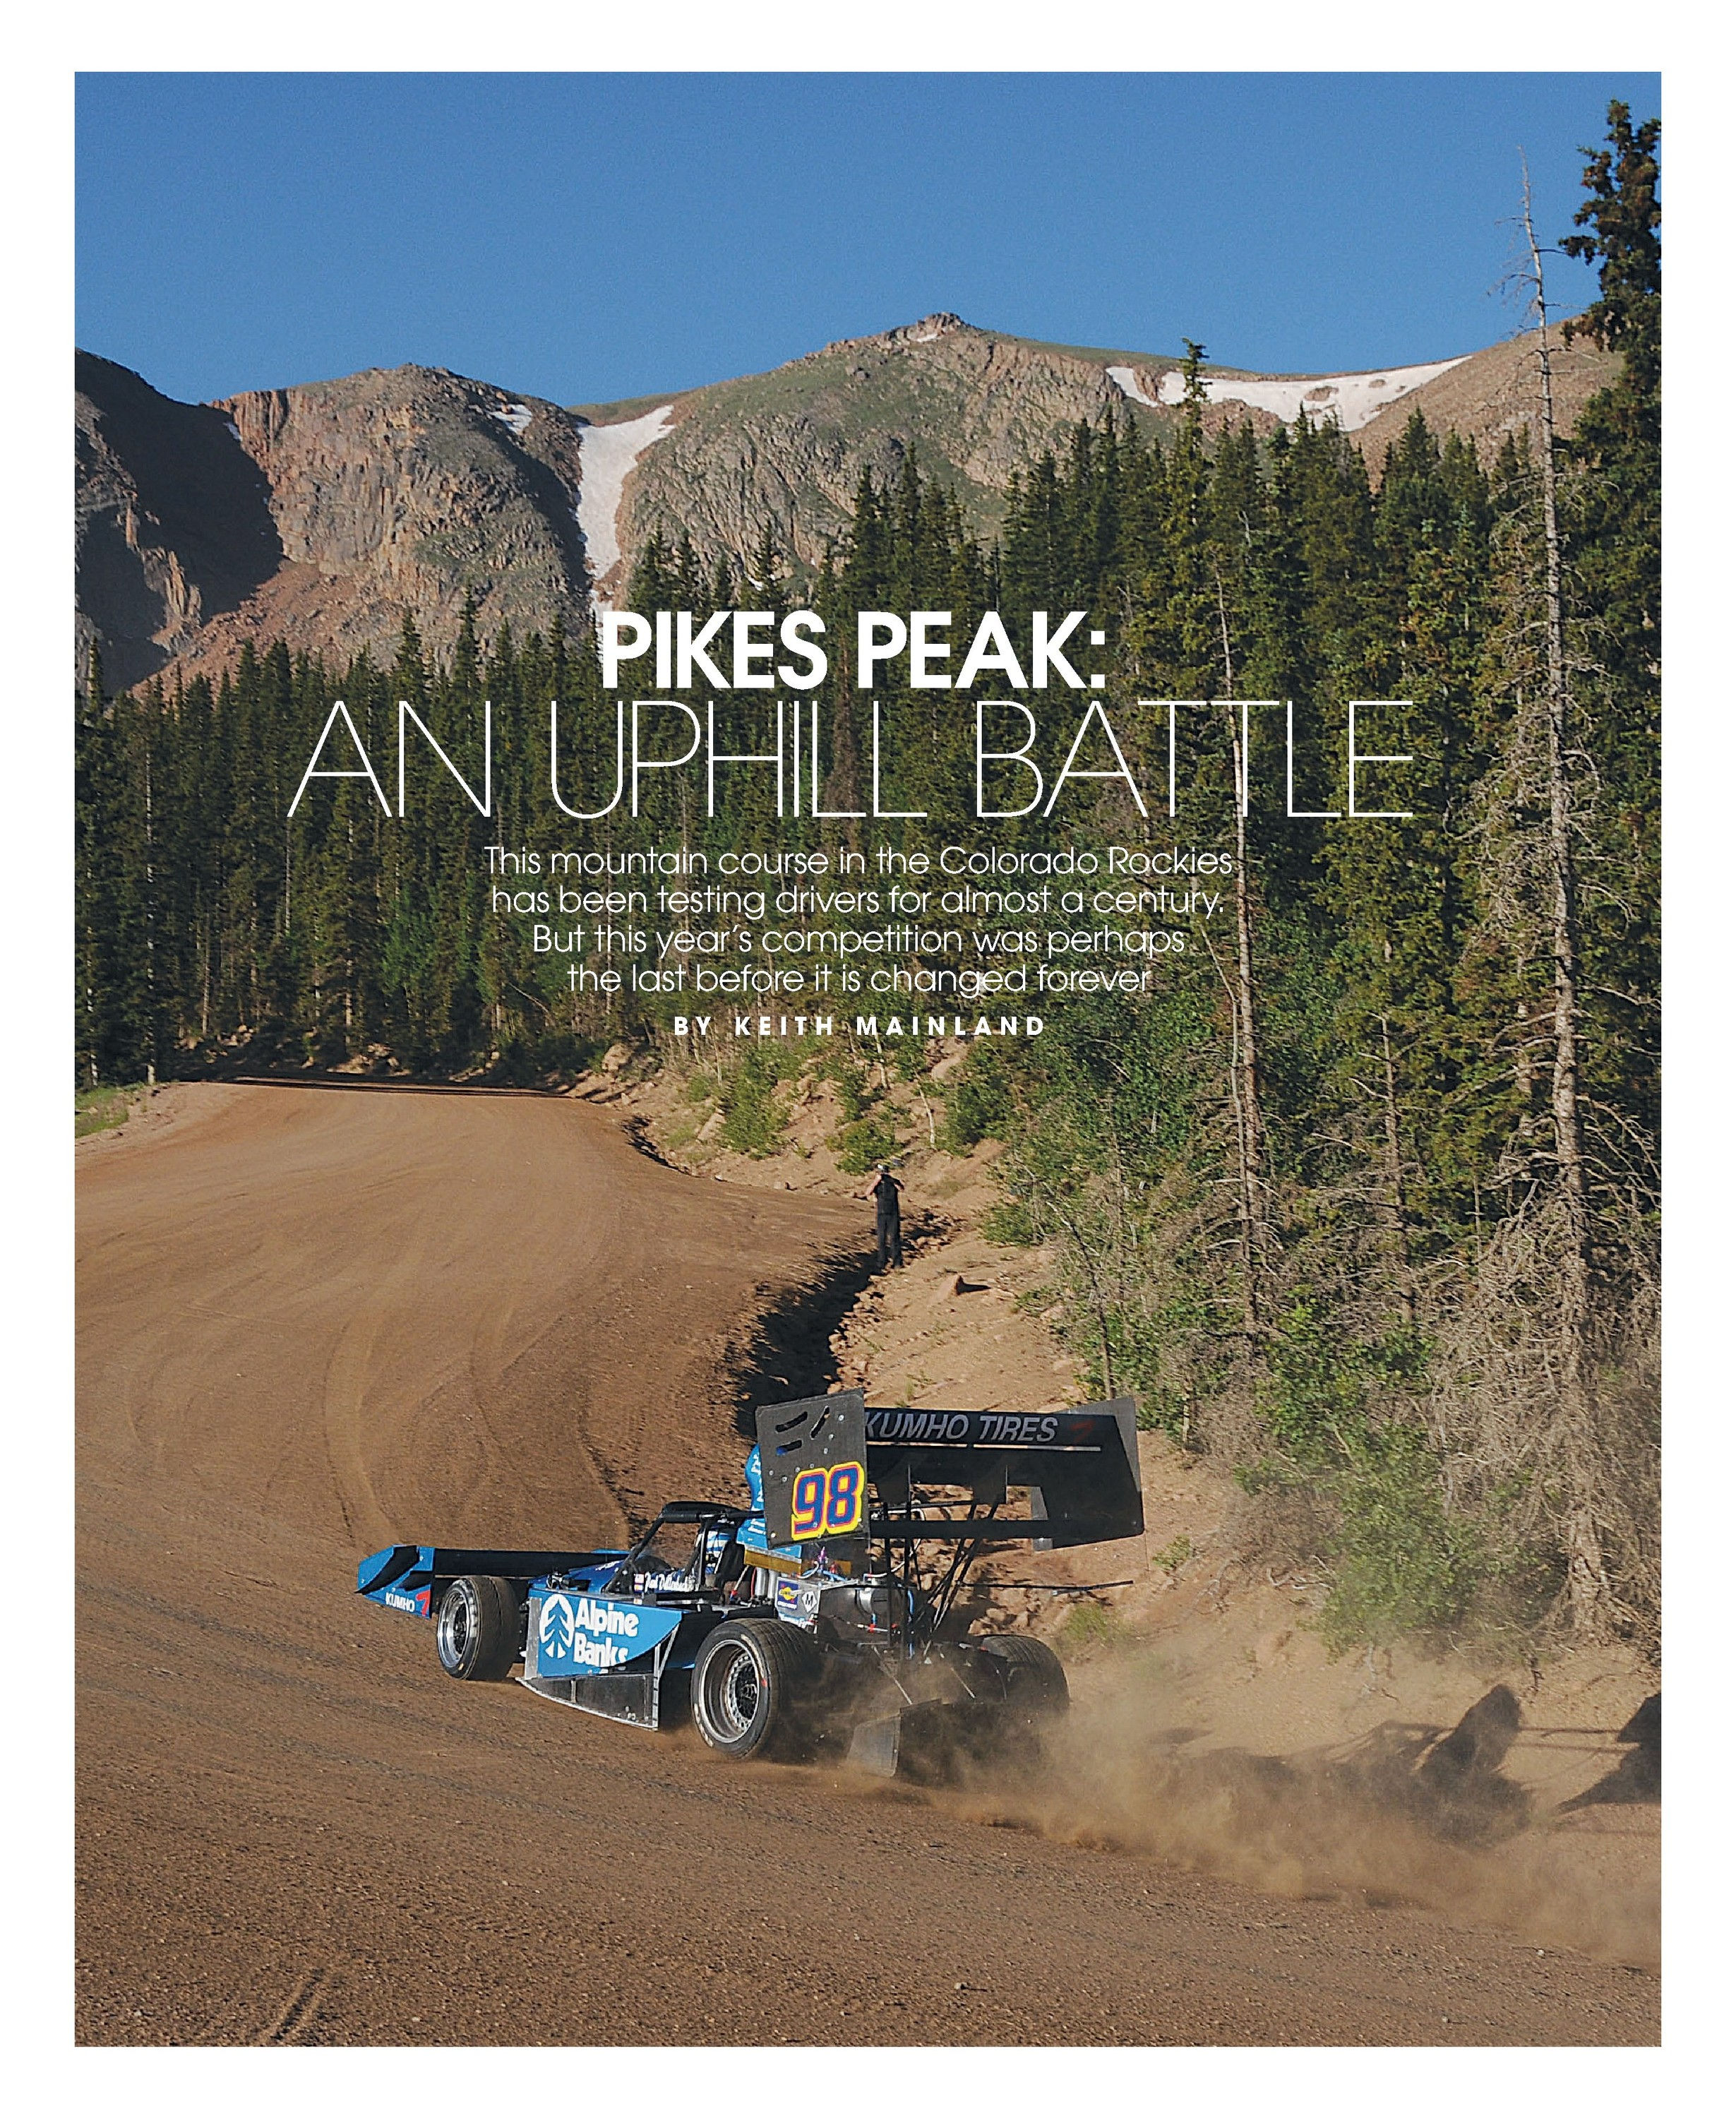 Pikes Peak: An uphill battle image